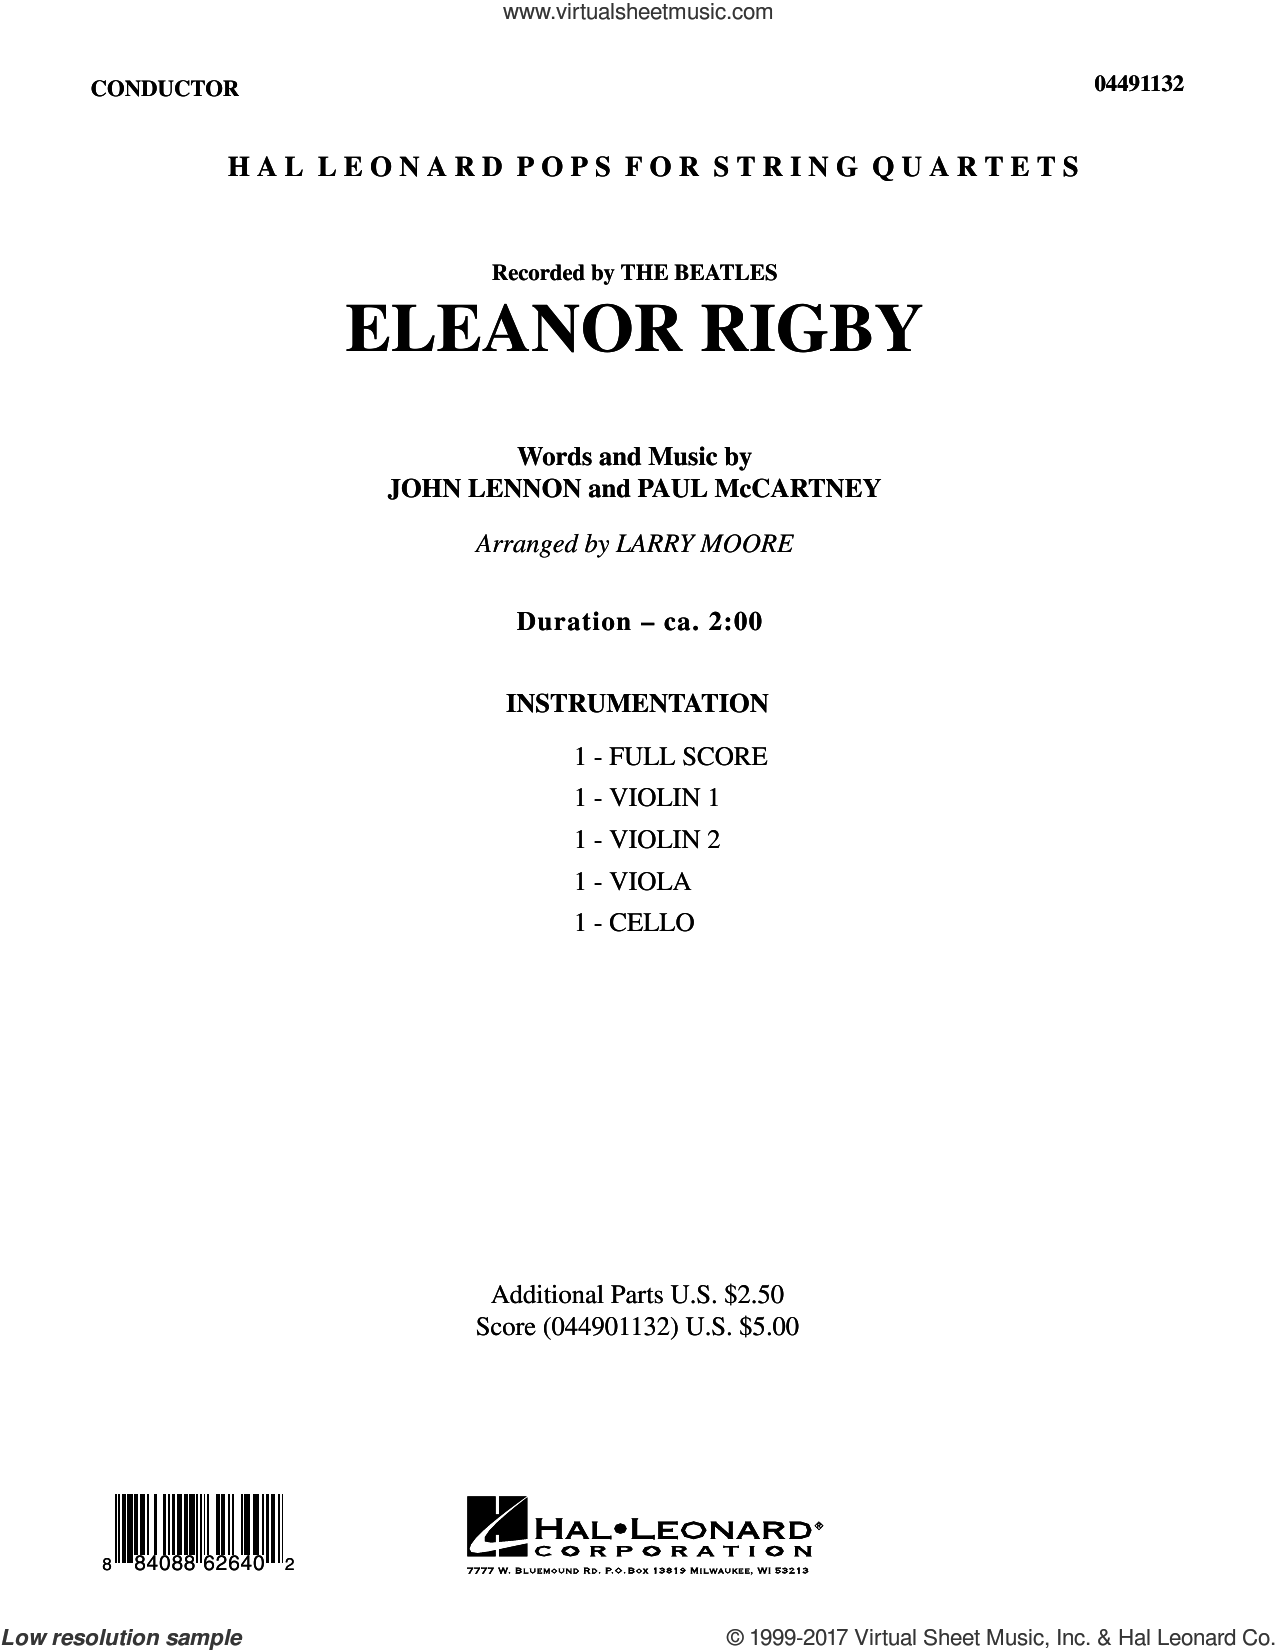 Eleanor Rigby (COMPLETE) sheet music for orchestra (Strings) by Larry Moore, David Cook, John Lennon, Paul McCartney and The Beatles, intermediate